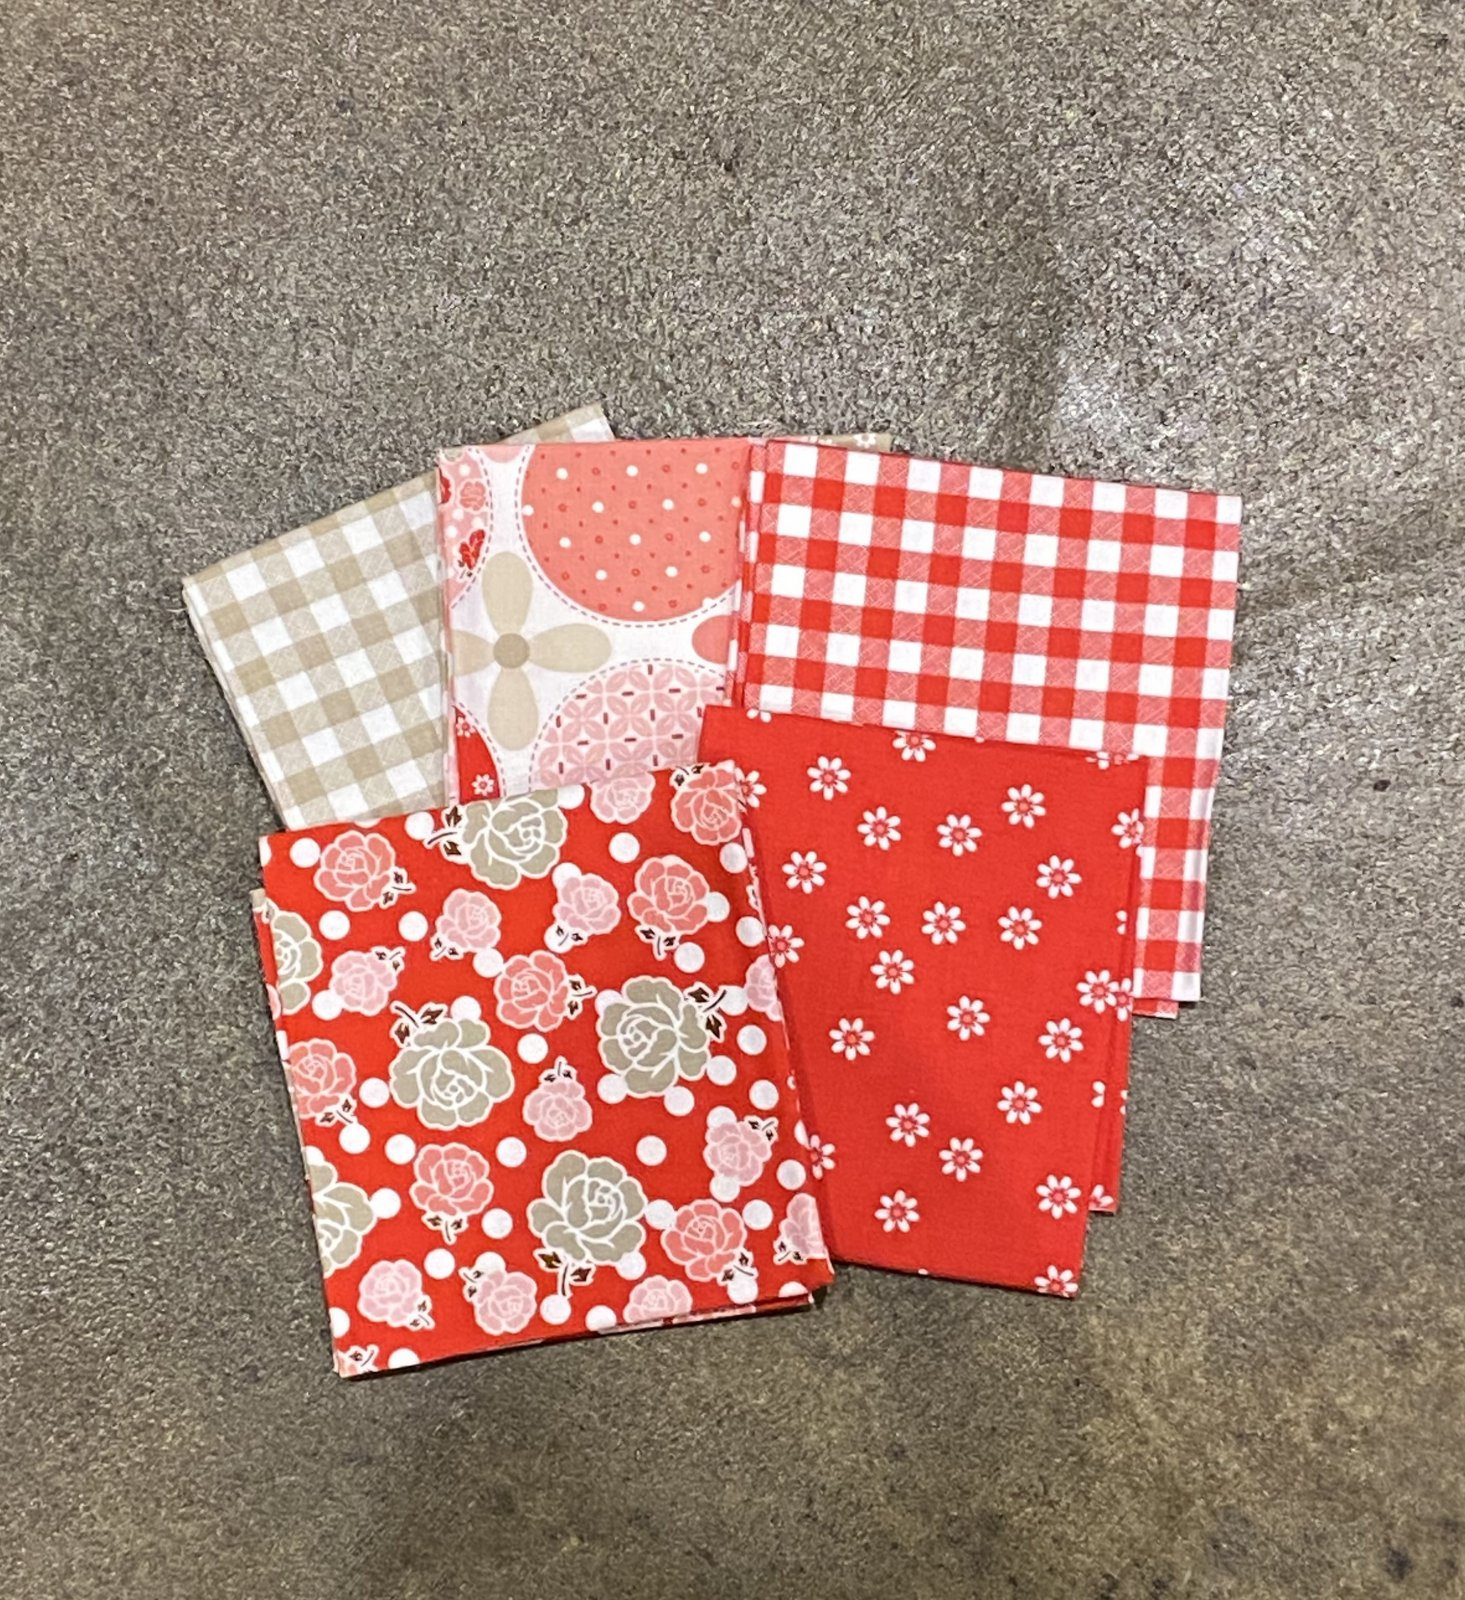 Polka Dot Stitches by Lori Holt - Fat Quarter Bundle - 5  Piece - Red